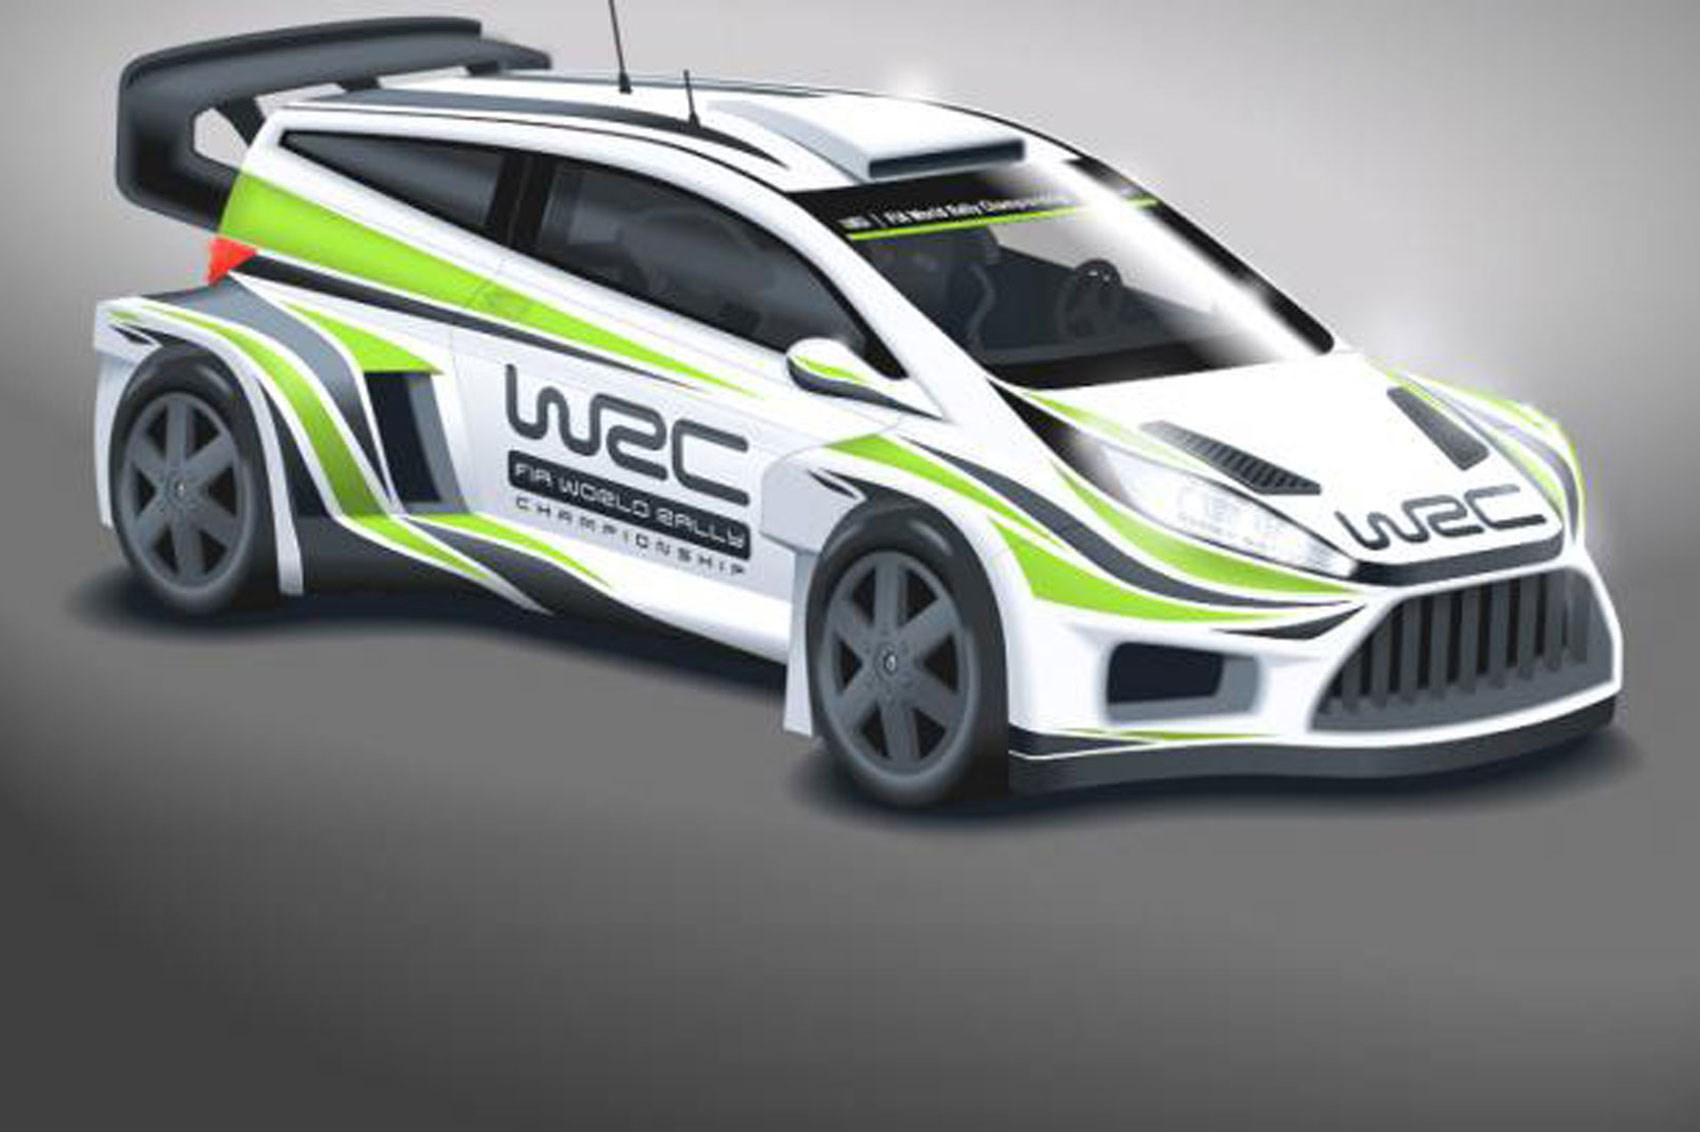 Ultrablogus  Marvellous Wild New Look For Wrc Cars In  By Car Magazine With Fetching Wrc Cars Will Get Wider Bodies Bigger Wings And More Power For  With Alluring Mks Interior Also Car Interior Cleaners In Addition  Kia Optima Ex Interior And  Subaru Forester Interior As Well As  Bmw  Series Interior Additionally  Suzuki Forenza Interior From Carmagazinecouk With Ultrablogus  Fetching Wild New Look For Wrc Cars In  By Car Magazine With Alluring Wrc Cars Will Get Wider Bodies Bigger Wings And More Power For  And Marvellous Mks Interior Also Car Interior Cleaners In Addition  Kia Optima Ex Interior From Carmagazinecouk